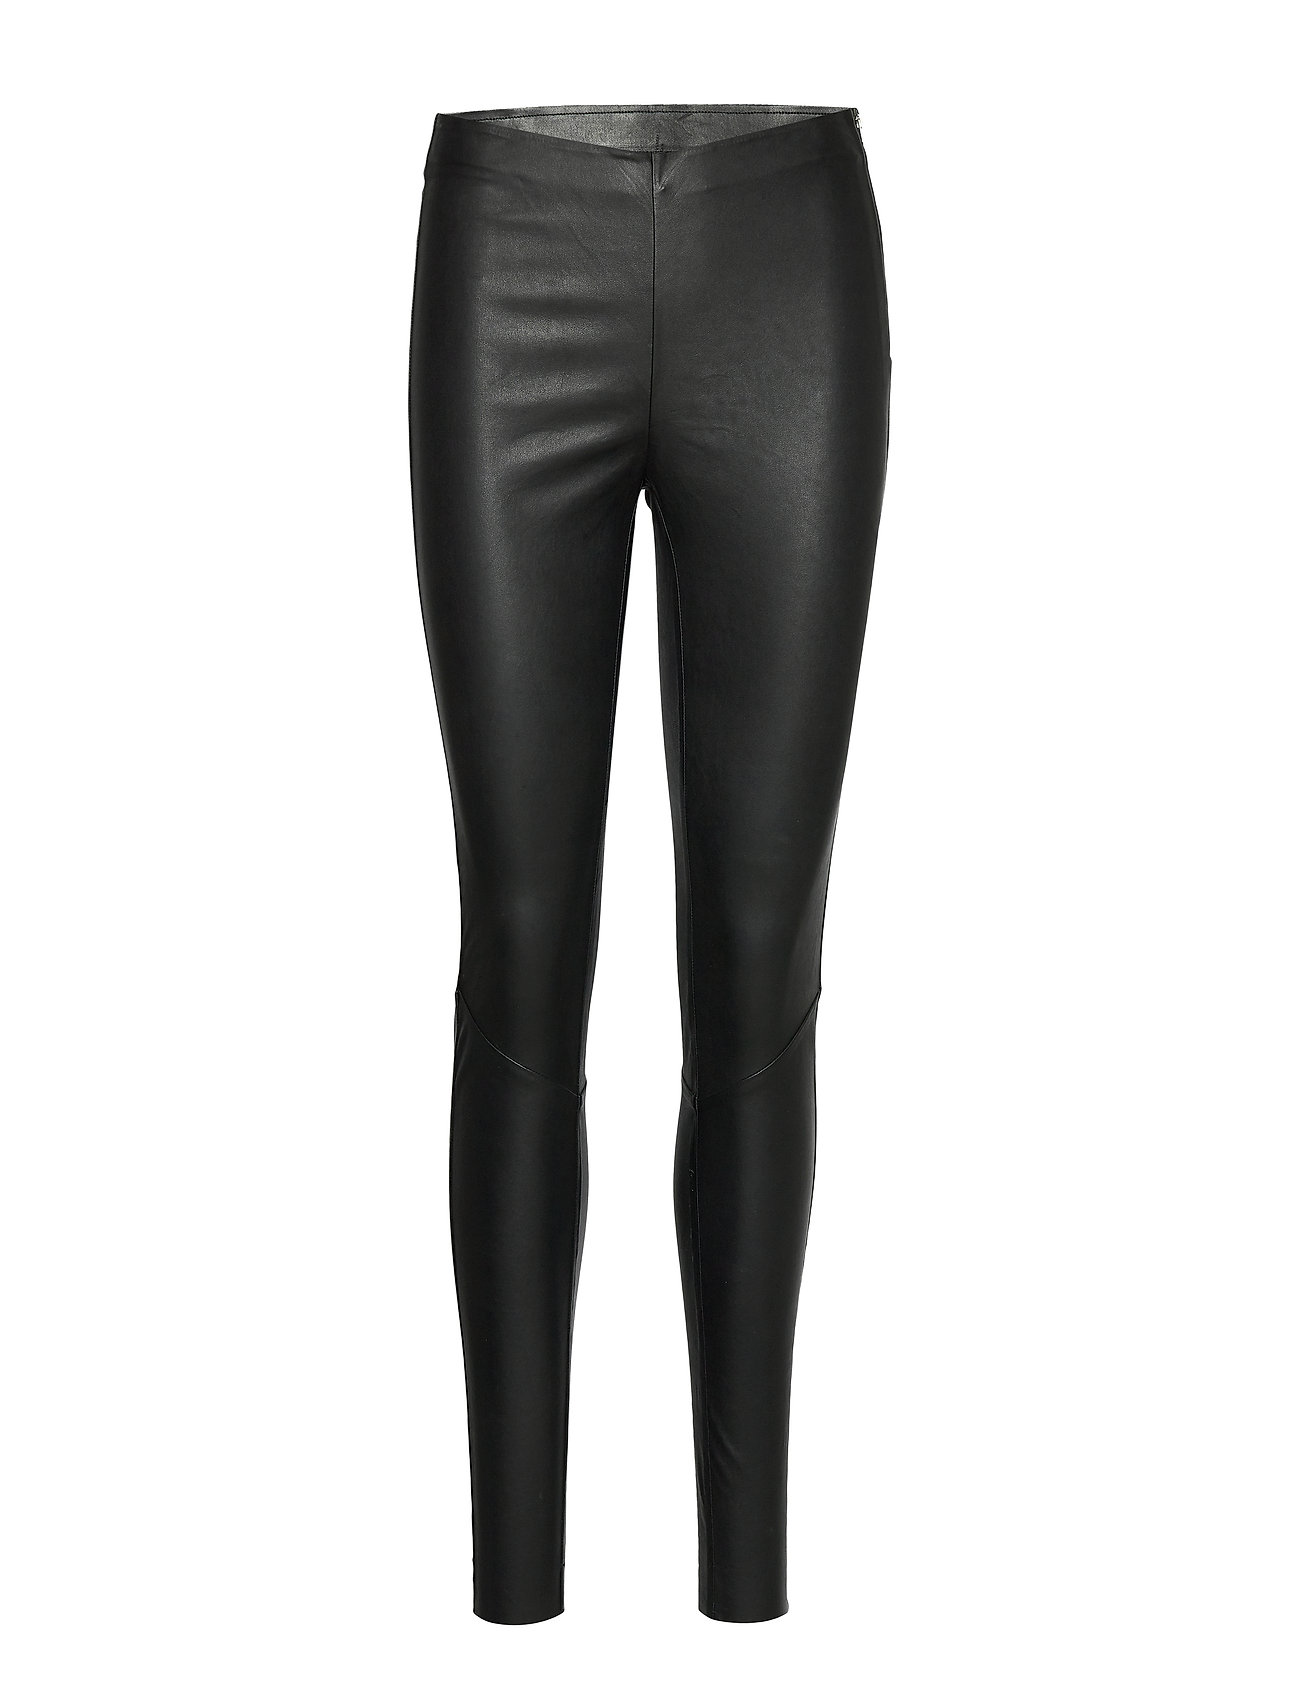 Image of Yaszeba Stretch Leather Legging Noos Leather Leggings/Bukser Sort YAS (3406284081)